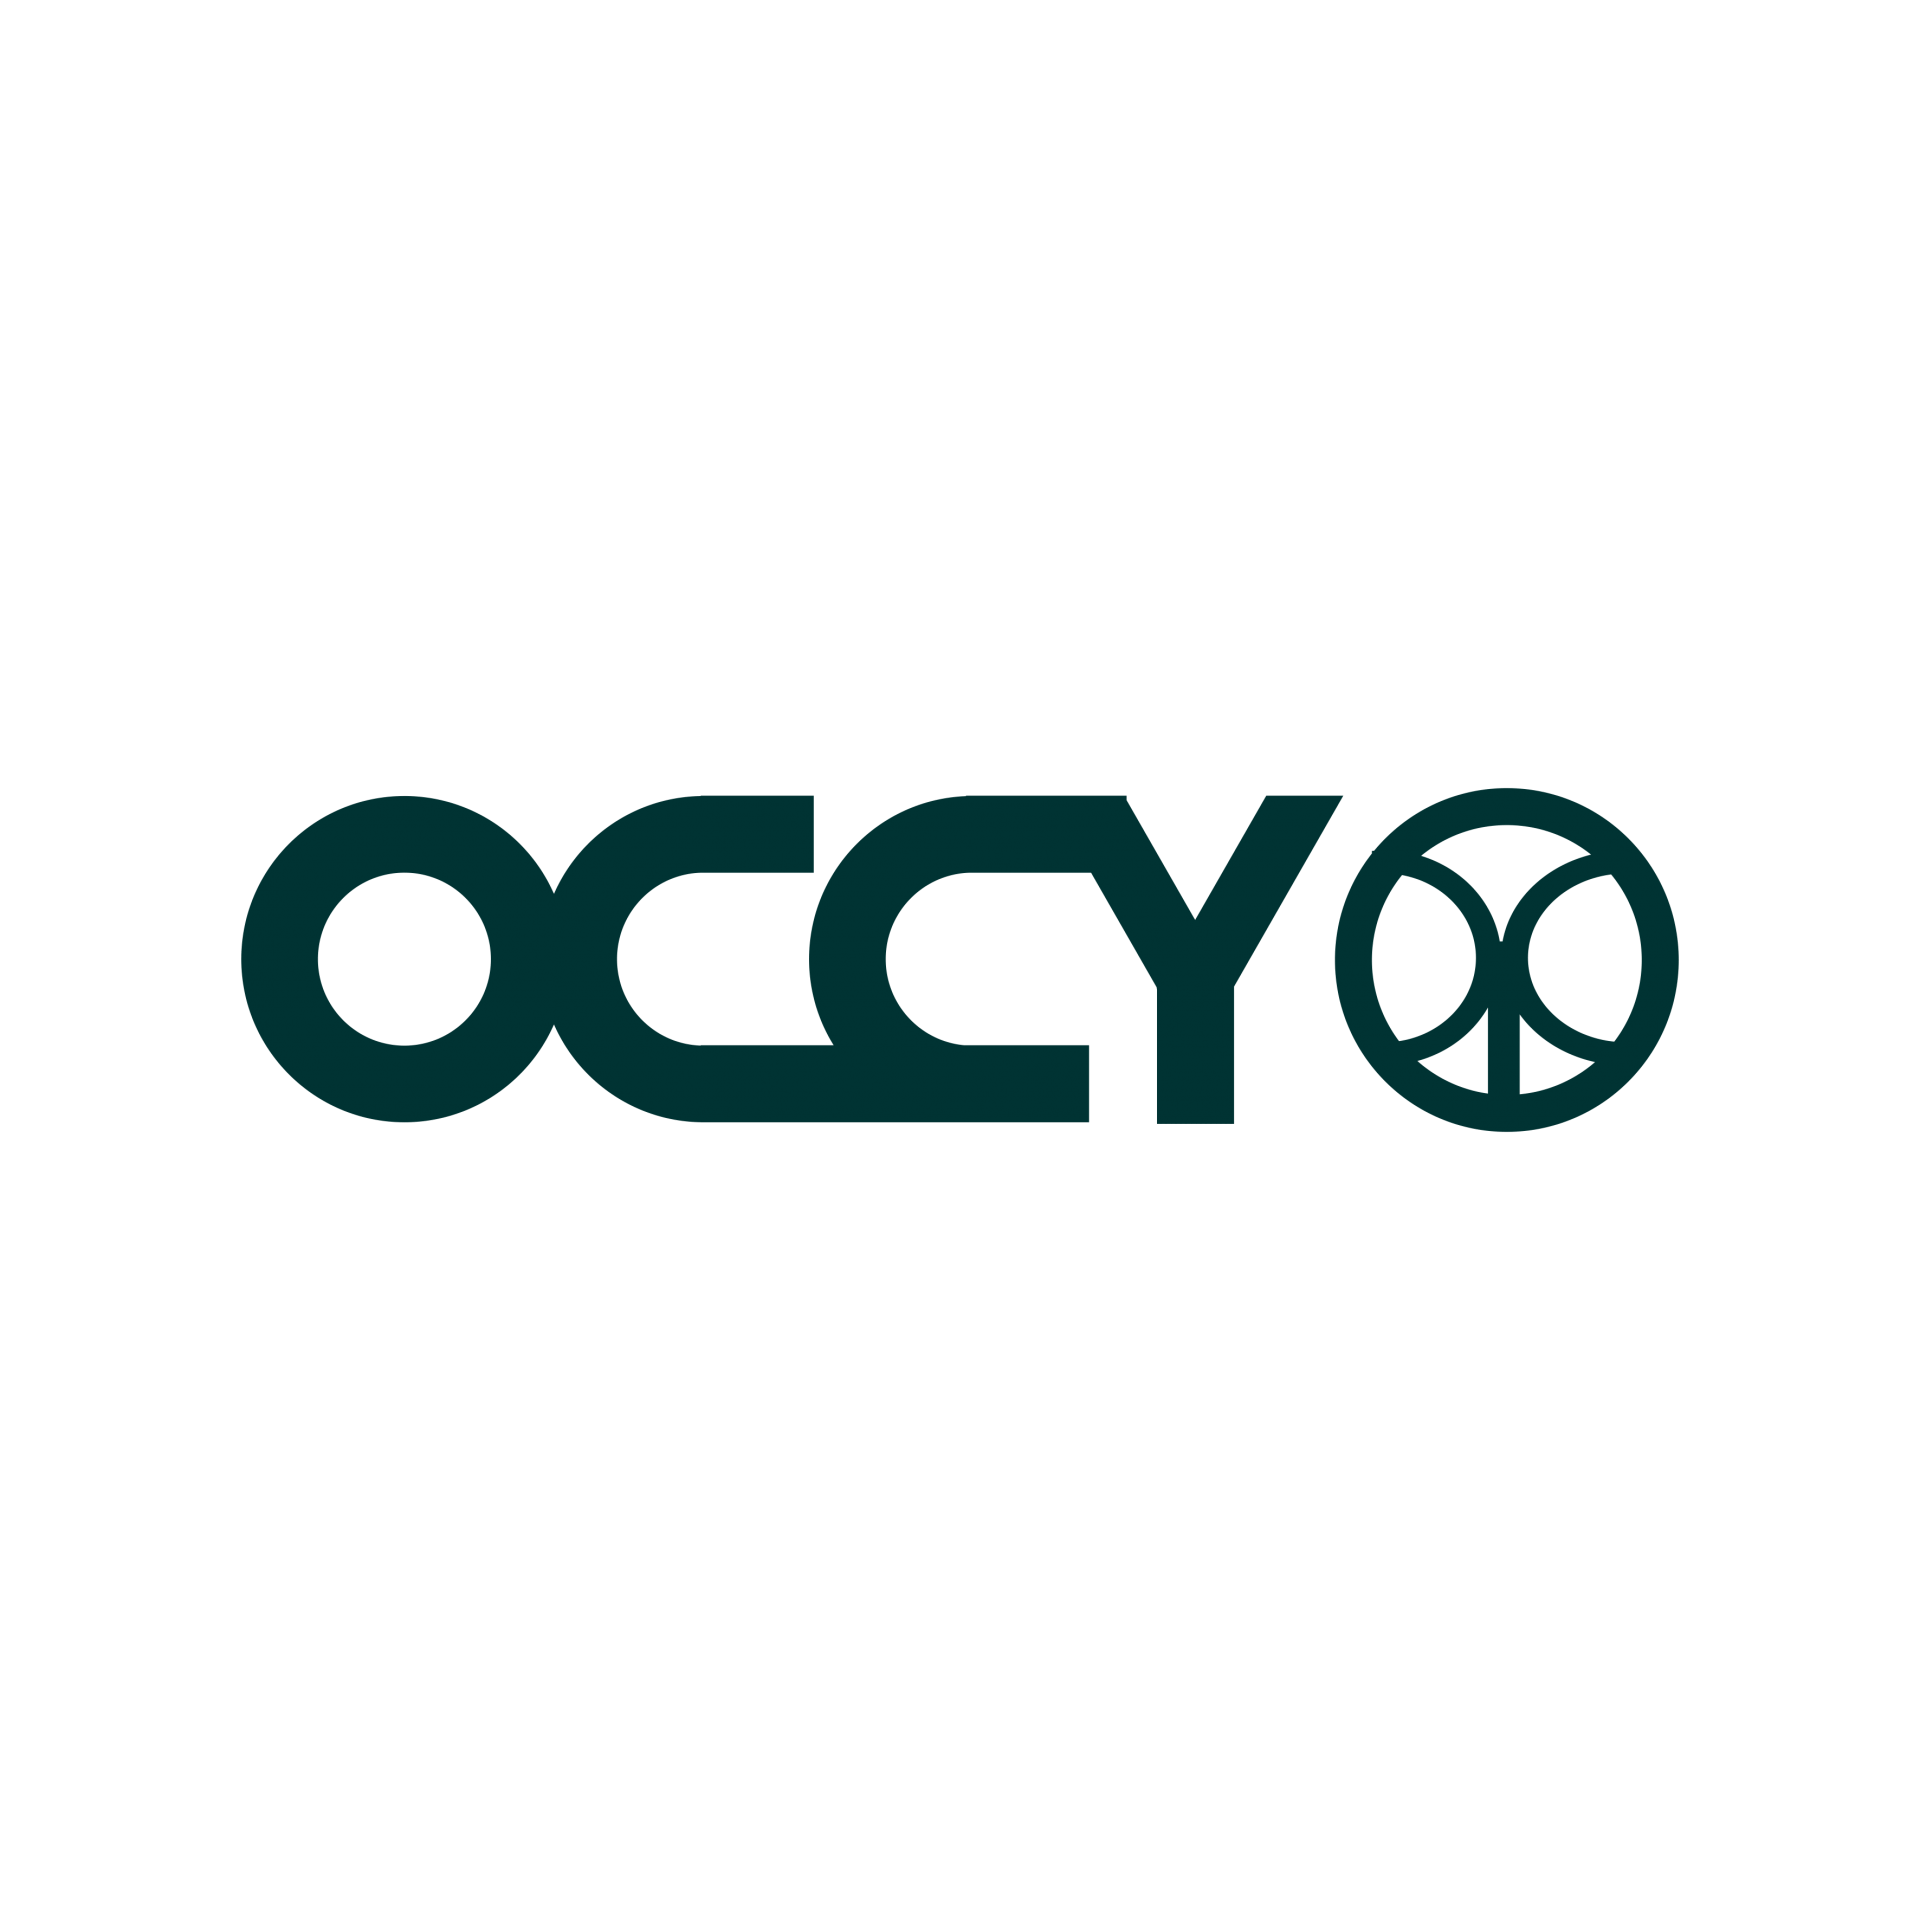 occy : Brand Short Description Type Here.